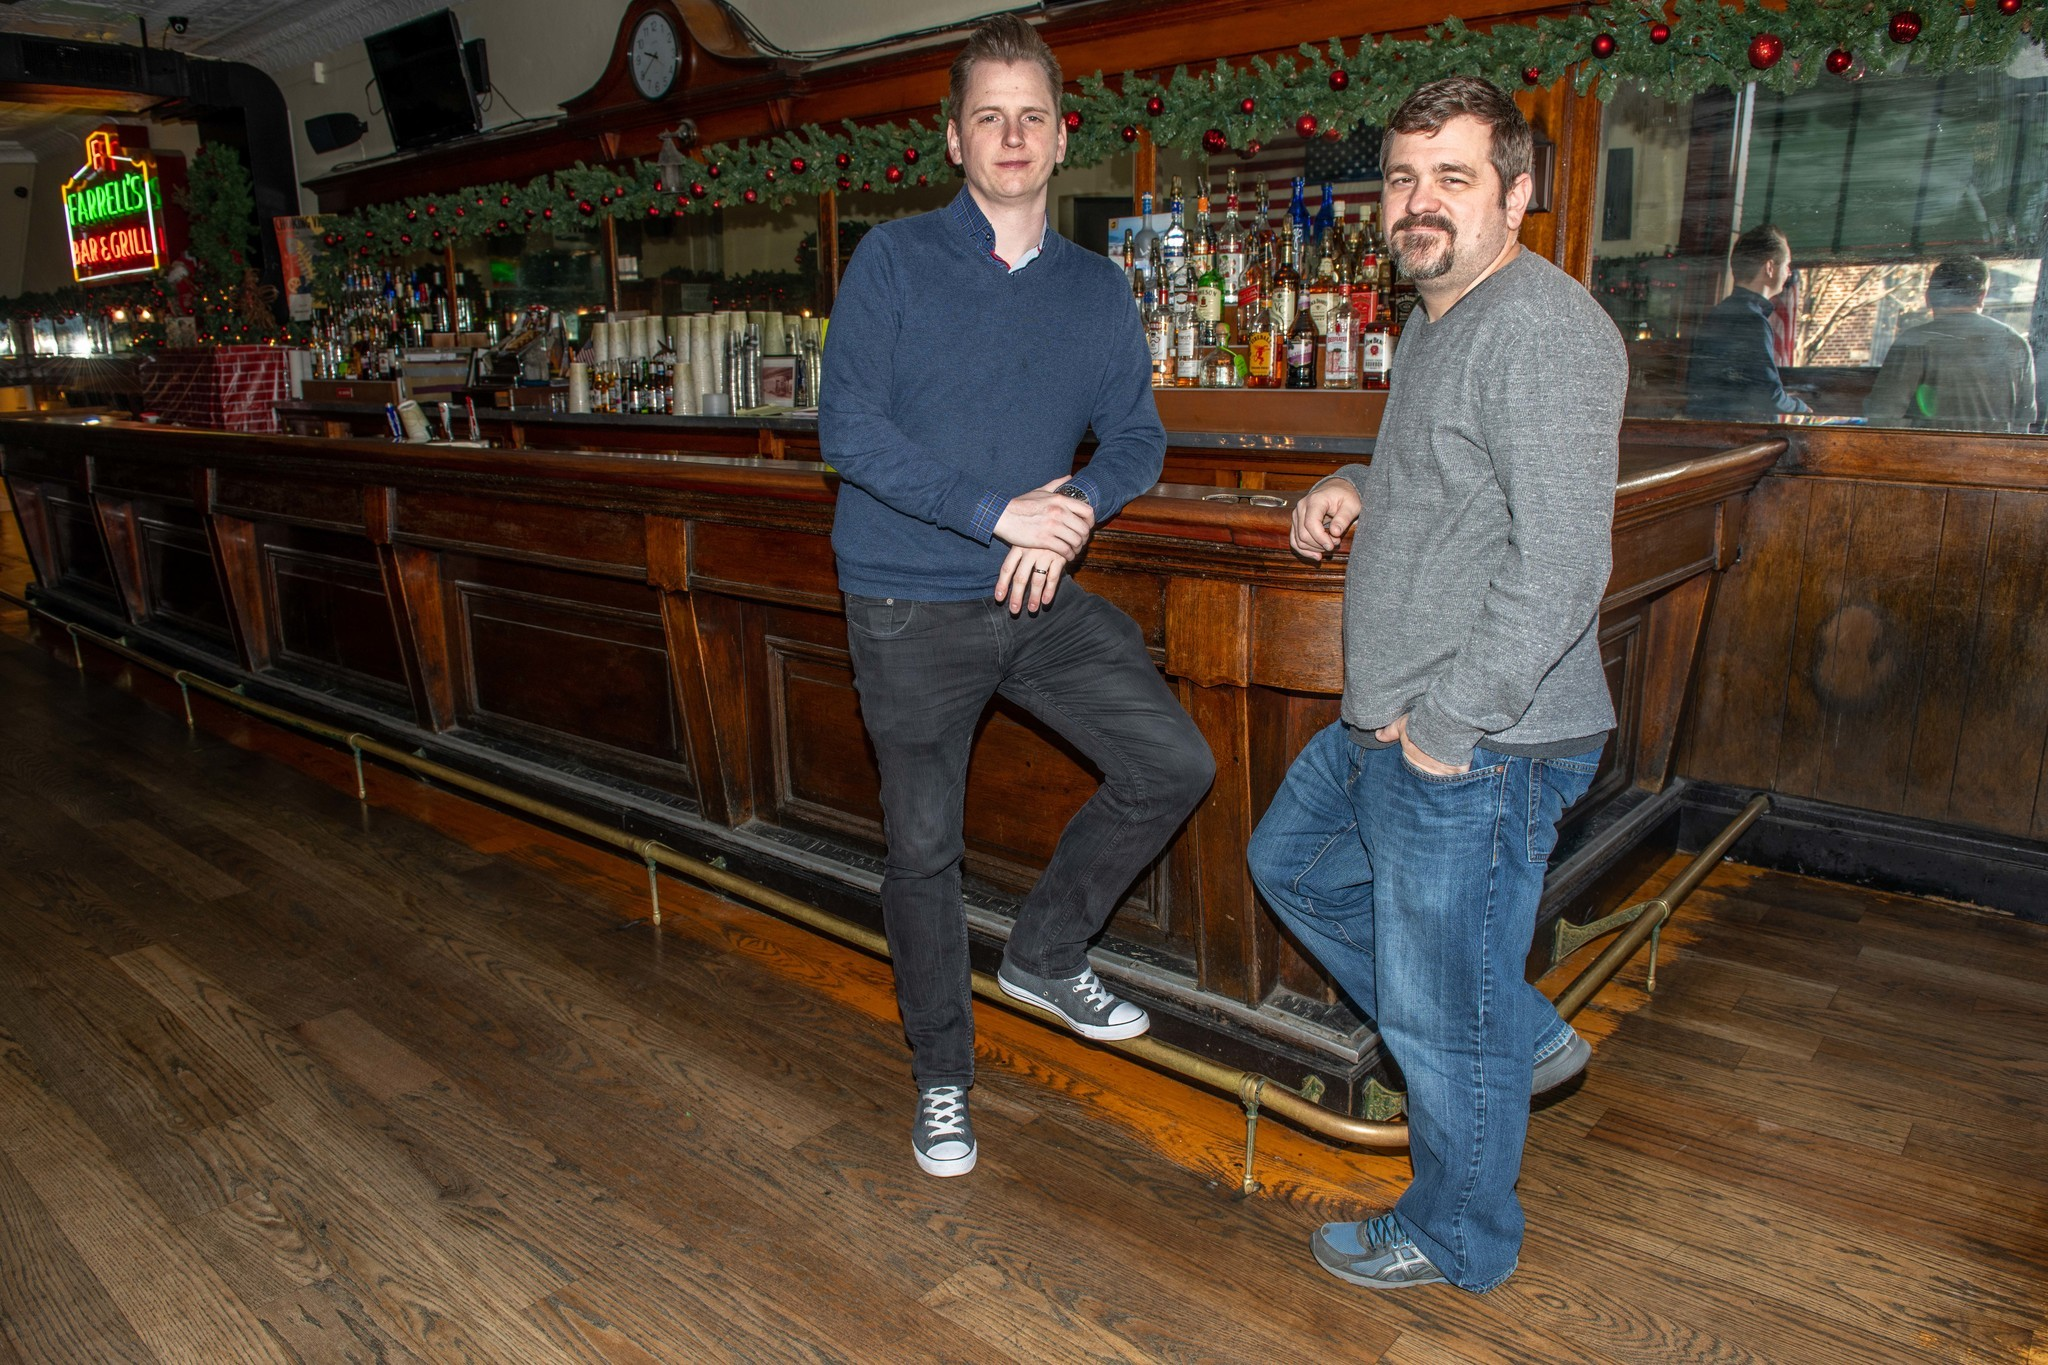 A Brooklyn tale: Farrell's Bar and Grill served up in documentary